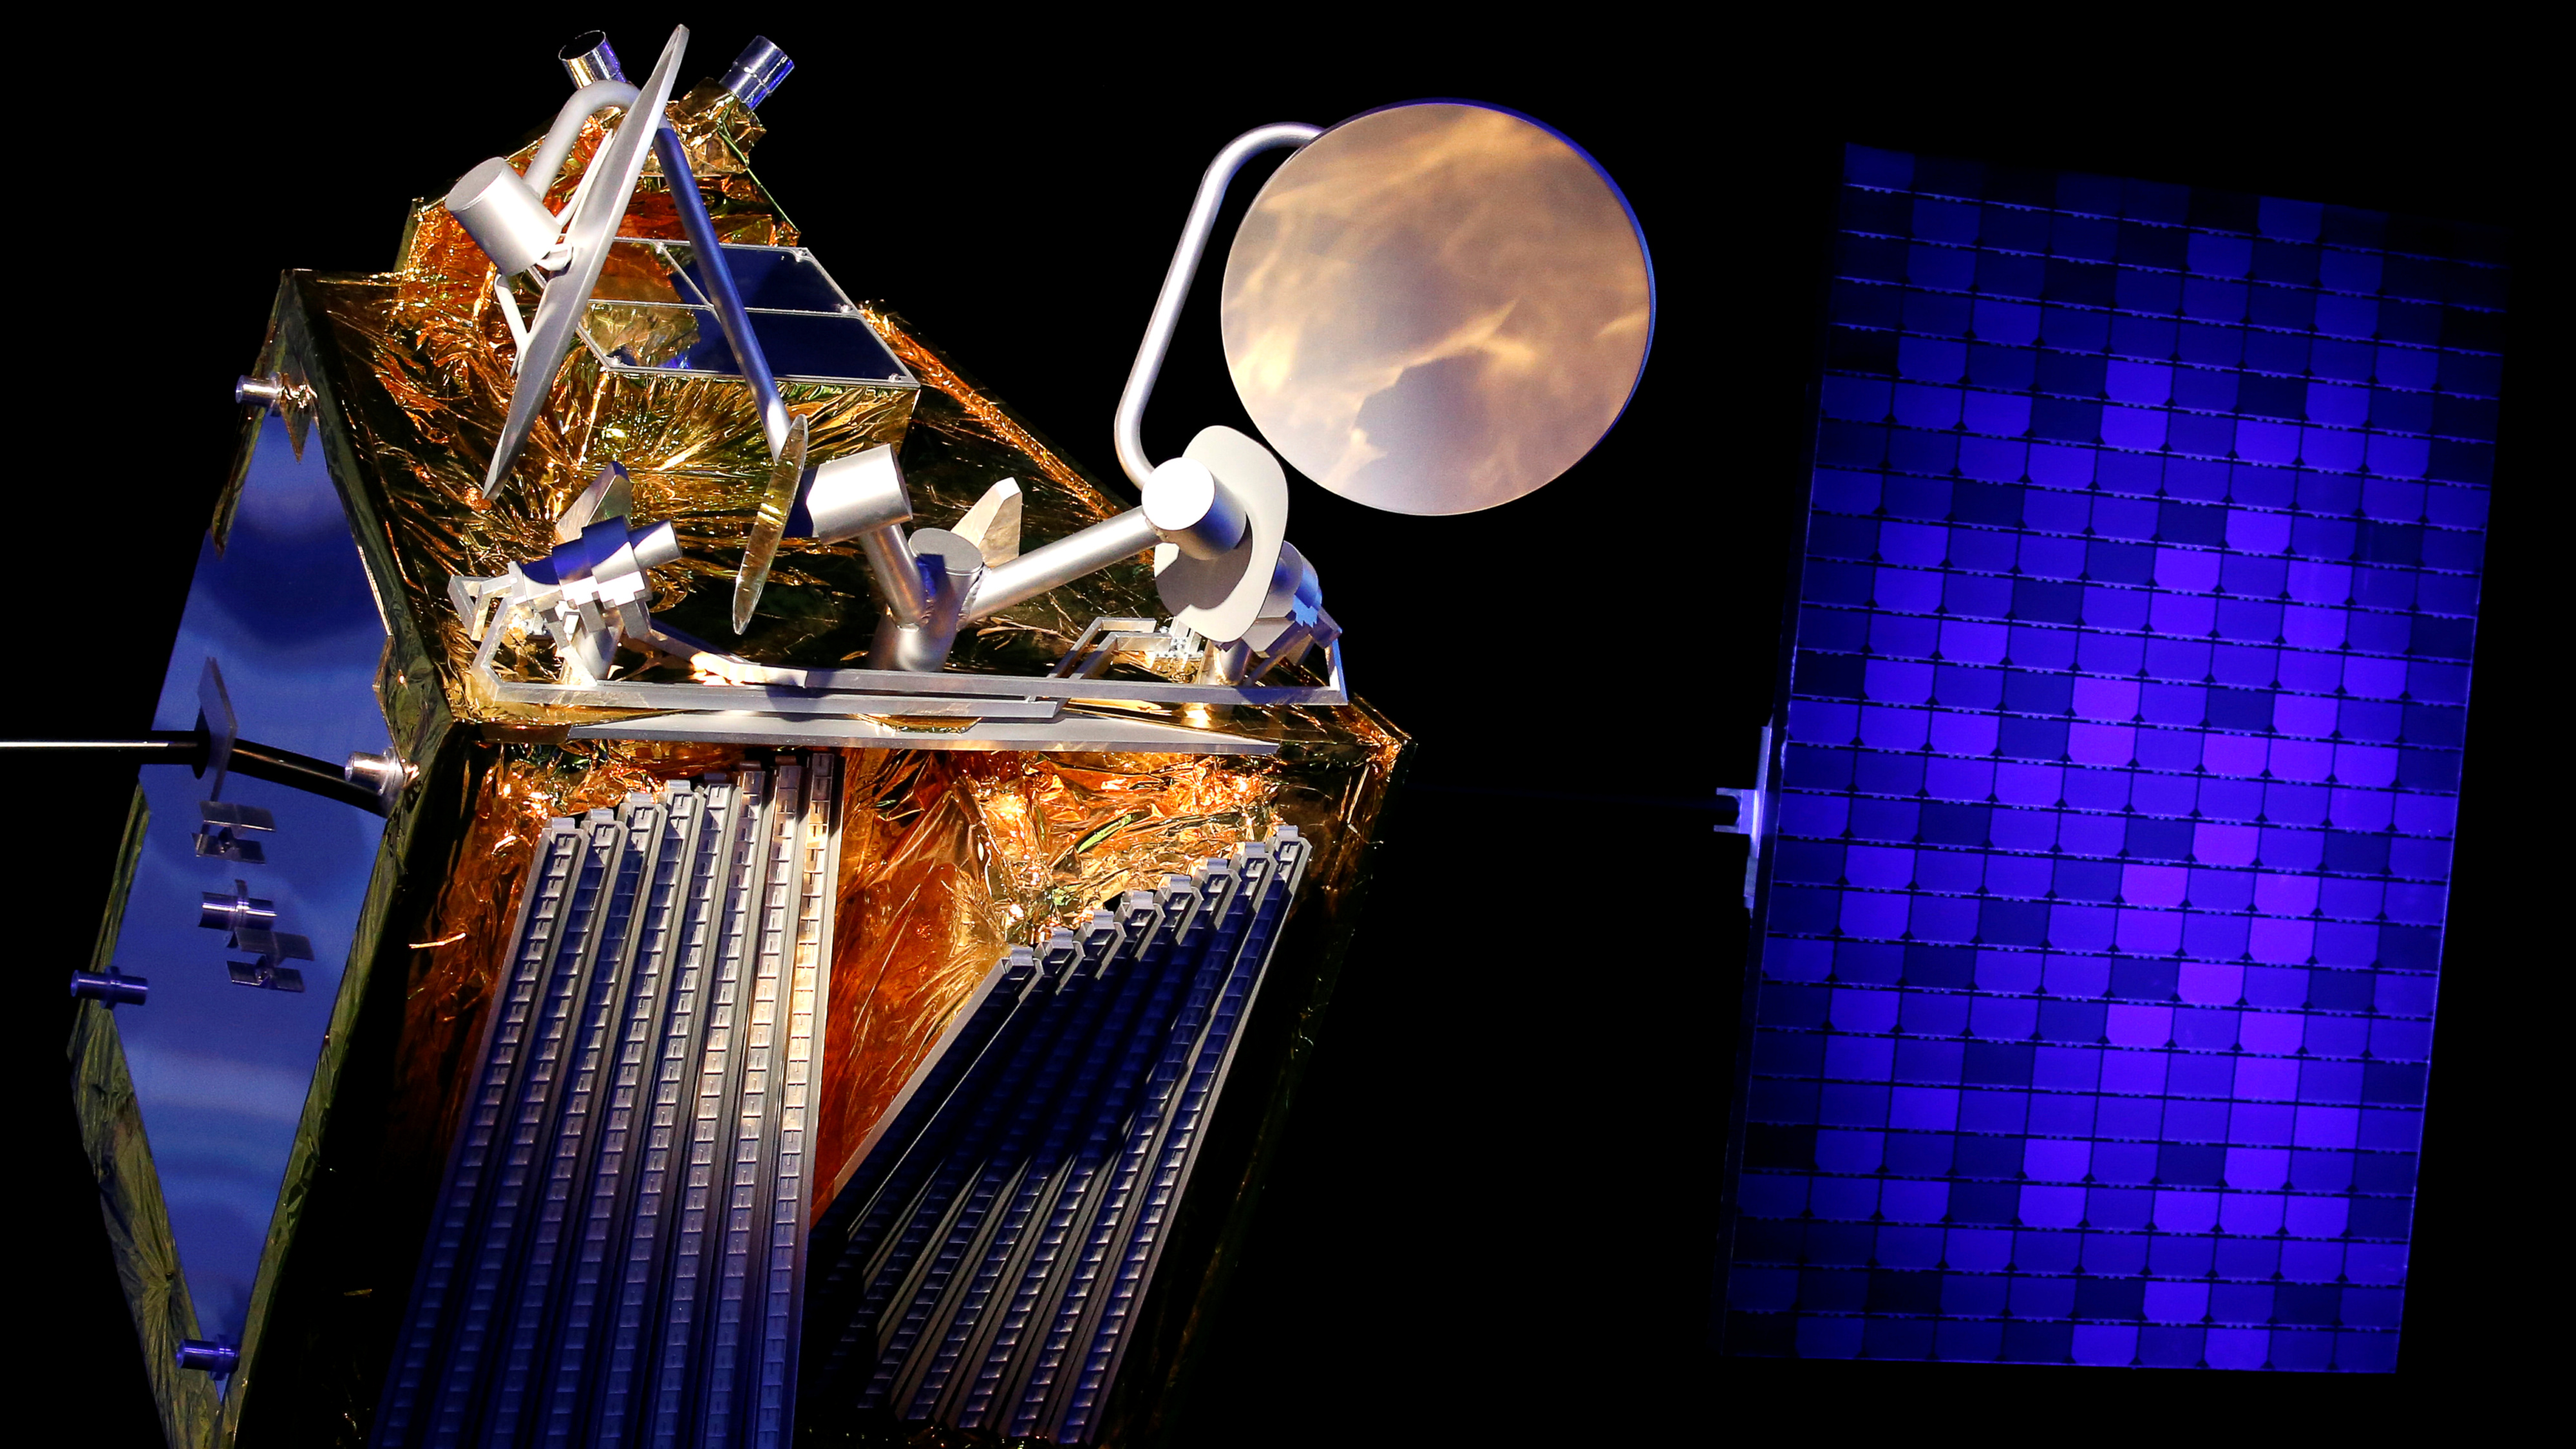 A scale model of an Airbus OneWeb satellite and its solar panel are pictured as Airbus announces annual results in Blagnac, near Toulouse, France February 14, 2019.